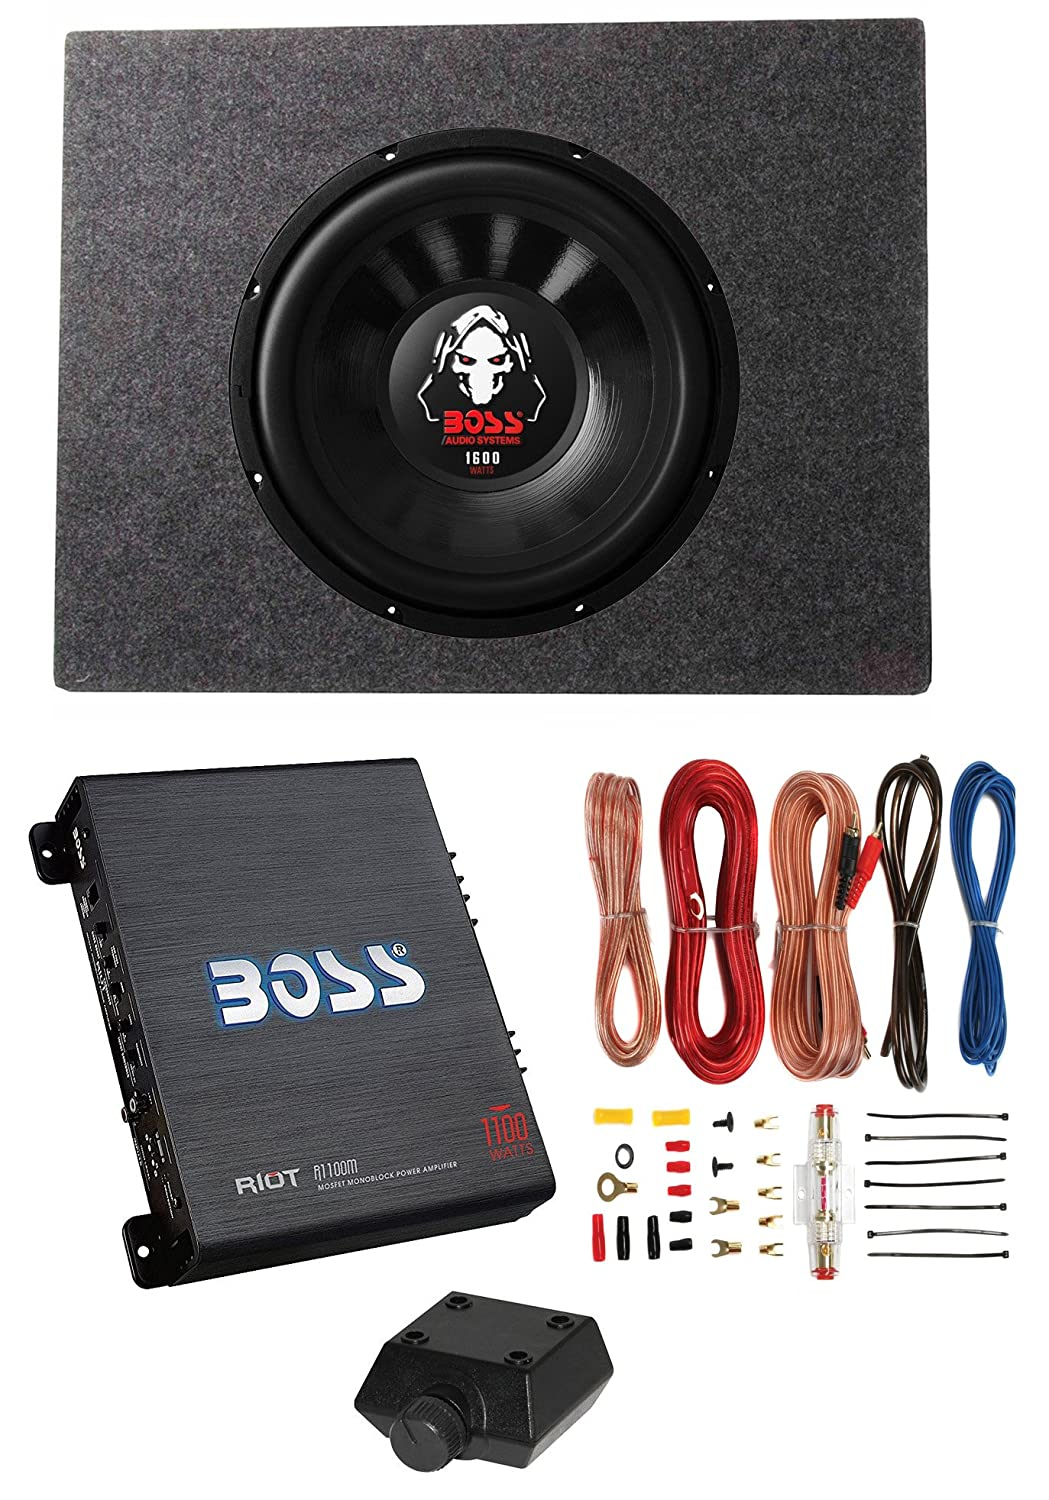 Boss Audio 12 1600w 4 Ohm Subwoofer Shallow Enclosure 8 Gauge Wiring Kit For Subs Amplifier Wire Car Electronics